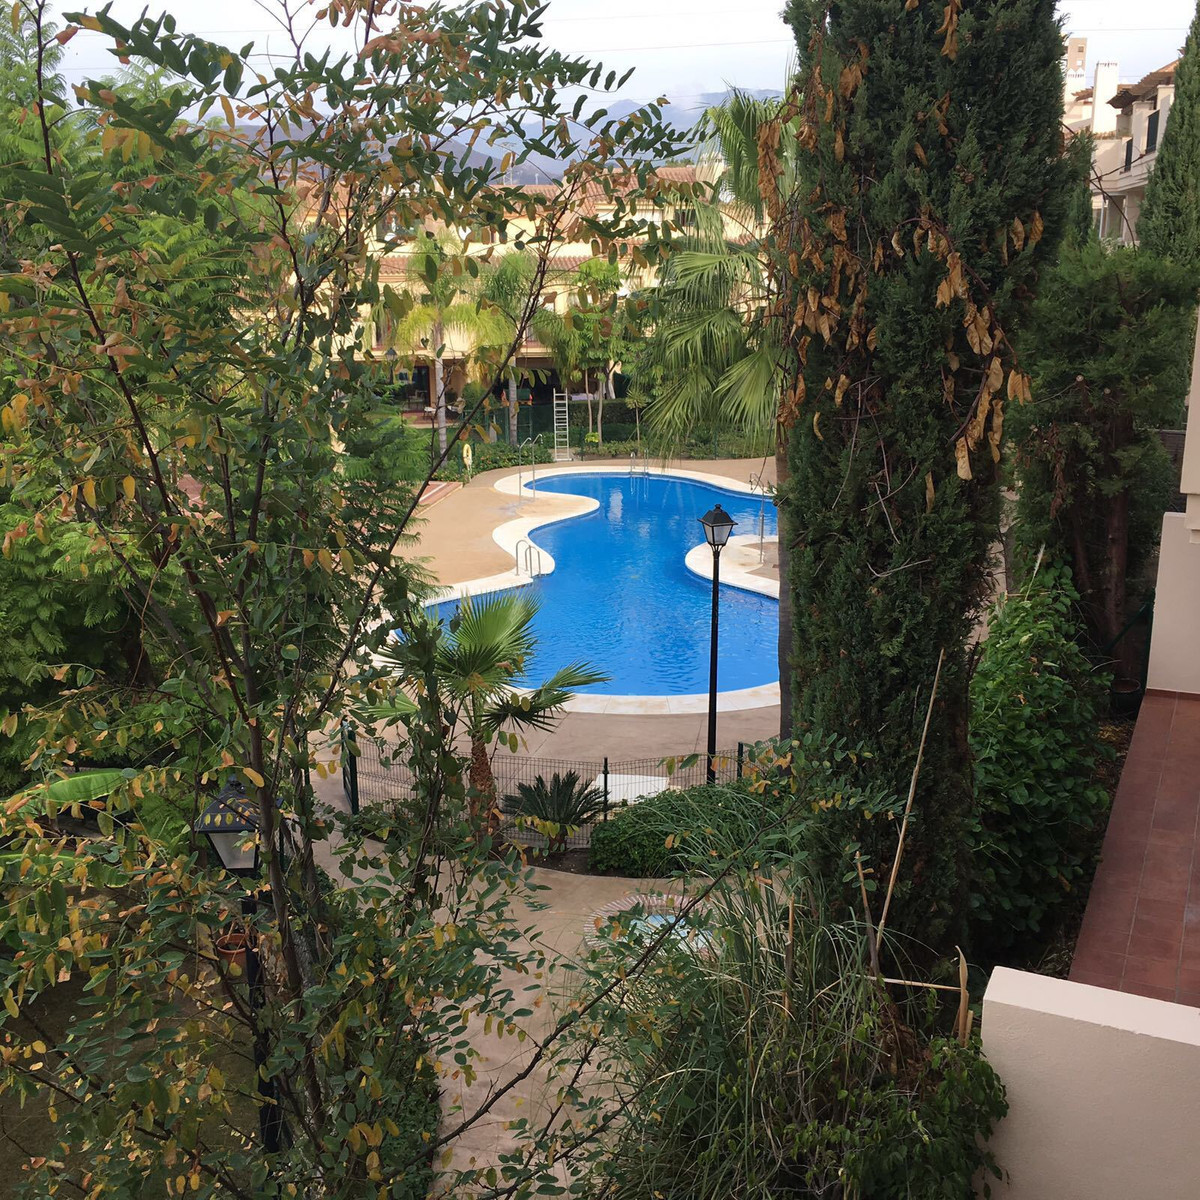 Fabulous 3 bedroom apartment located in a well established community with easy access to Puerto Banu,Spain